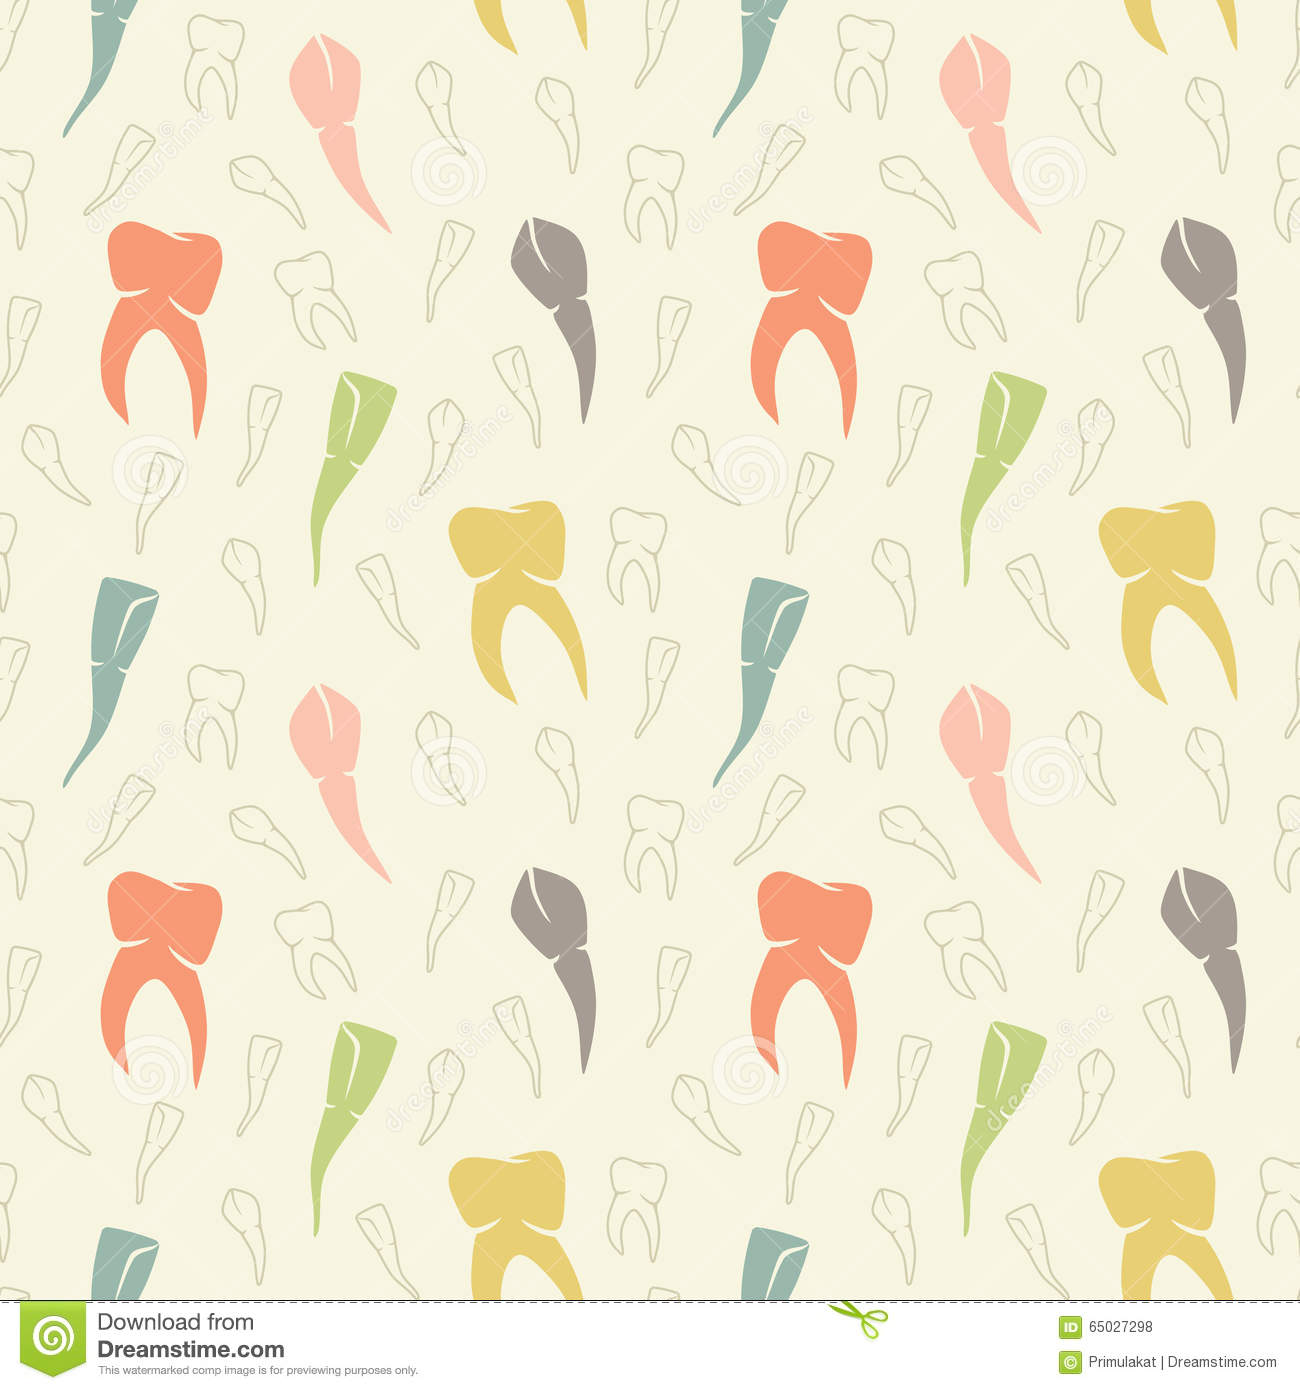 Cute Dental Wallpaper Vector Seamless Light Colorful Teeth Pattern Stock Vector